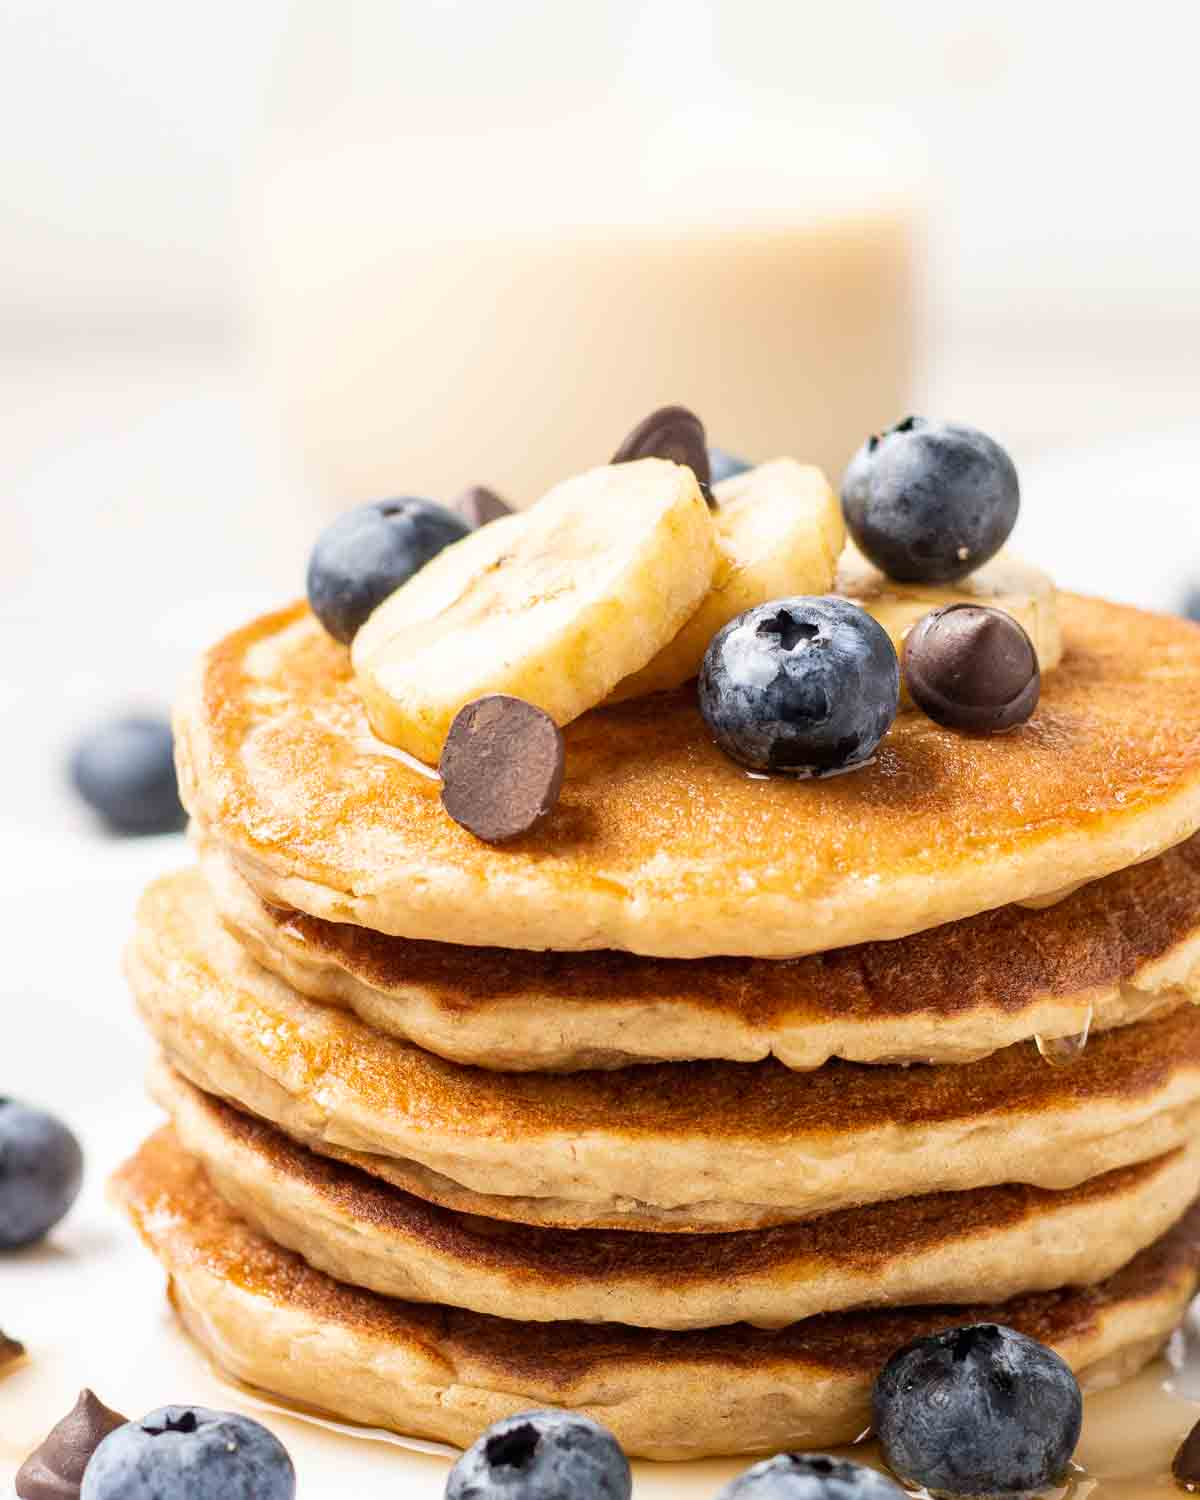 A stack of eggless protein pancakes topped with banana slices, blueberries and chocolate chips.